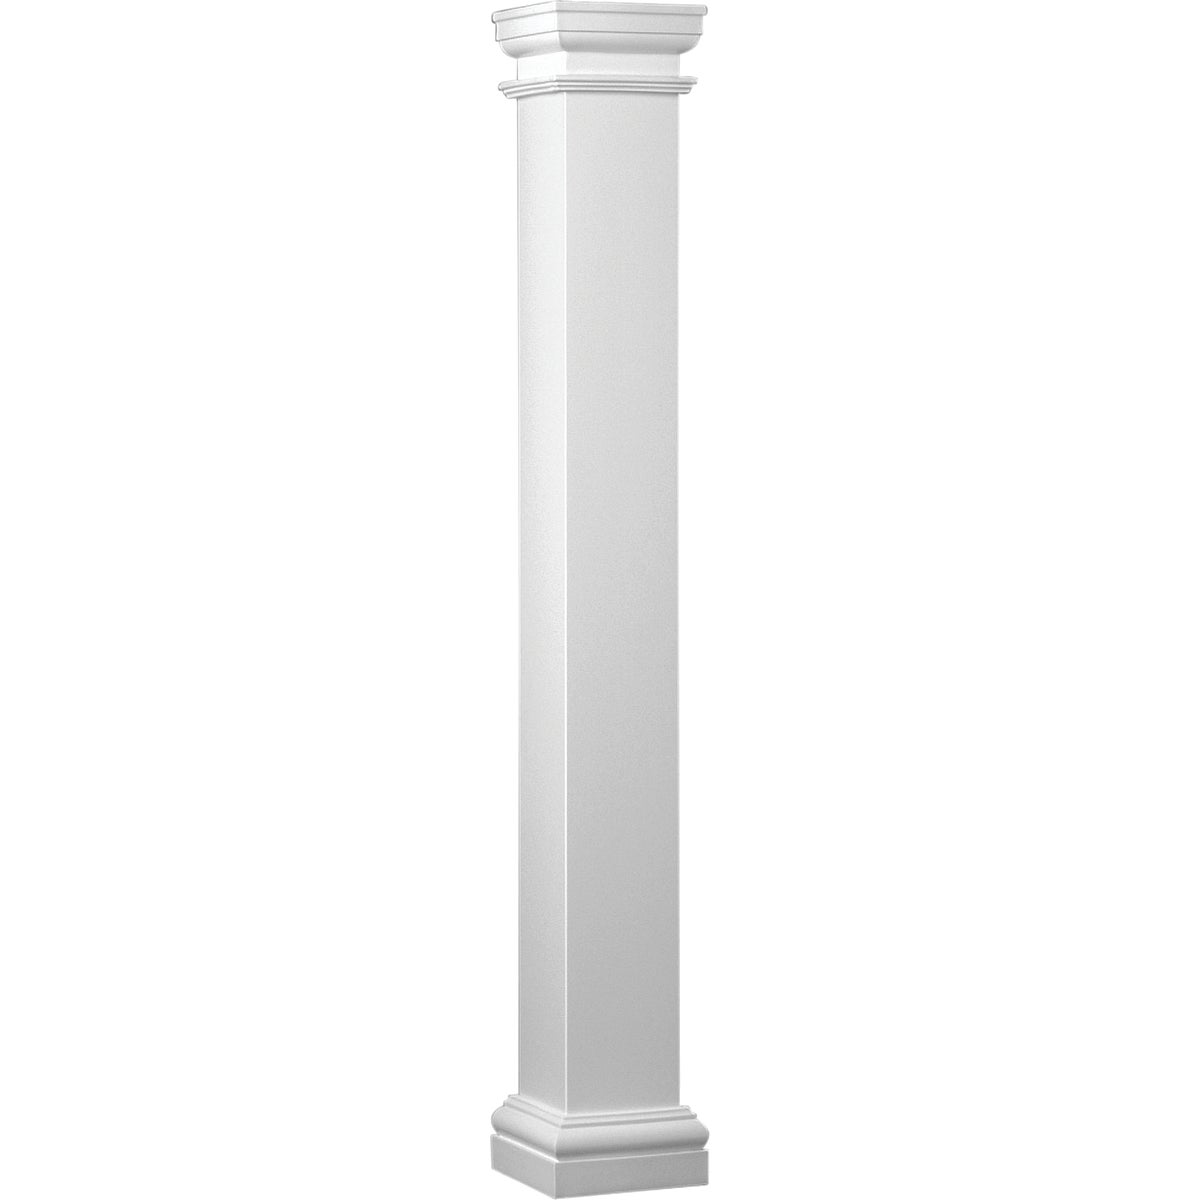 "8""X8' SQ F/G COLUMN - 80120808SP by DIXIE PACIFIC"